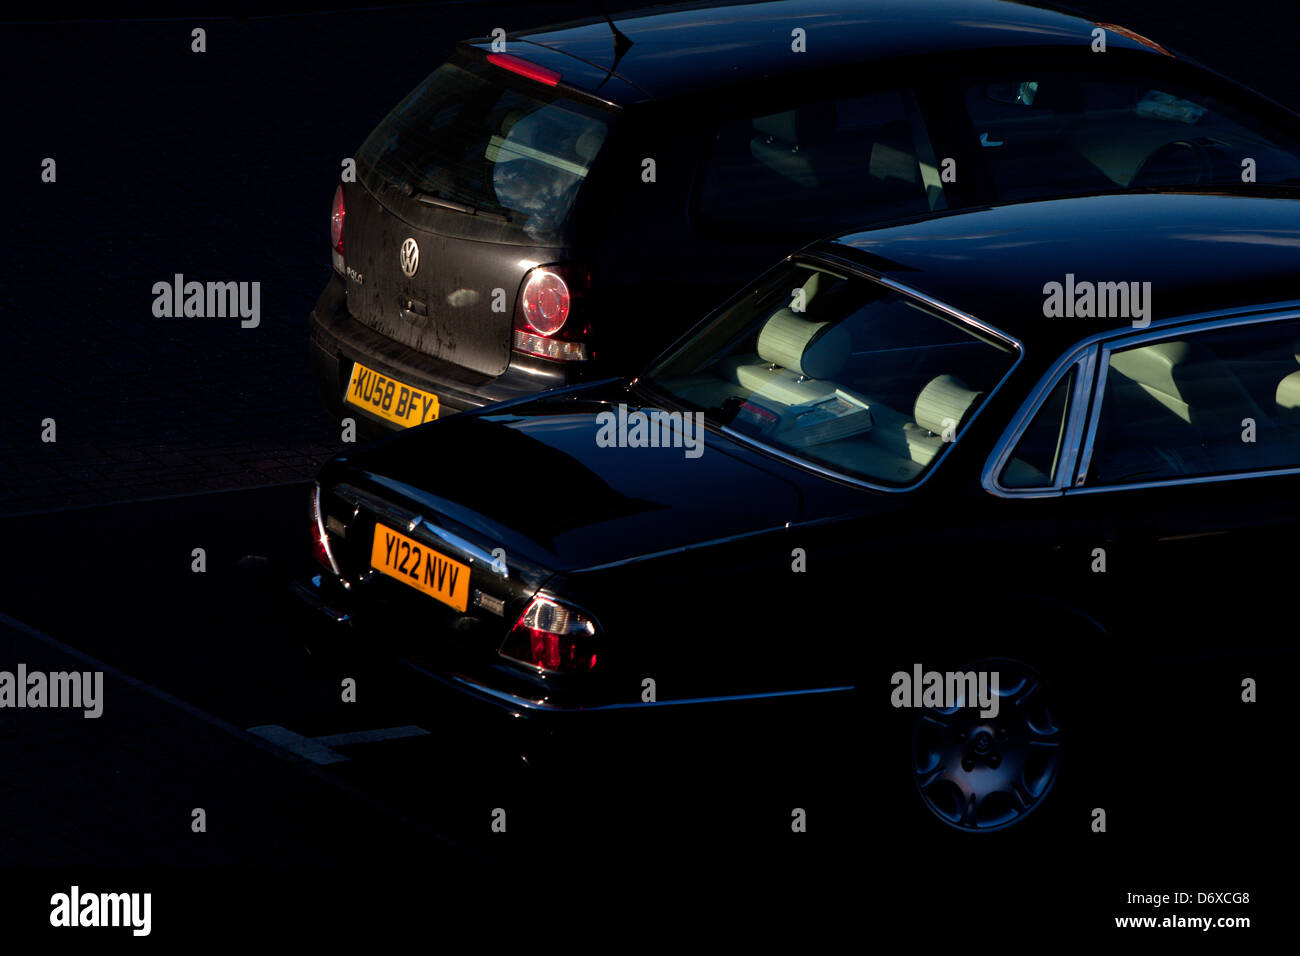 Cars in a car park at dusk - Stock Image